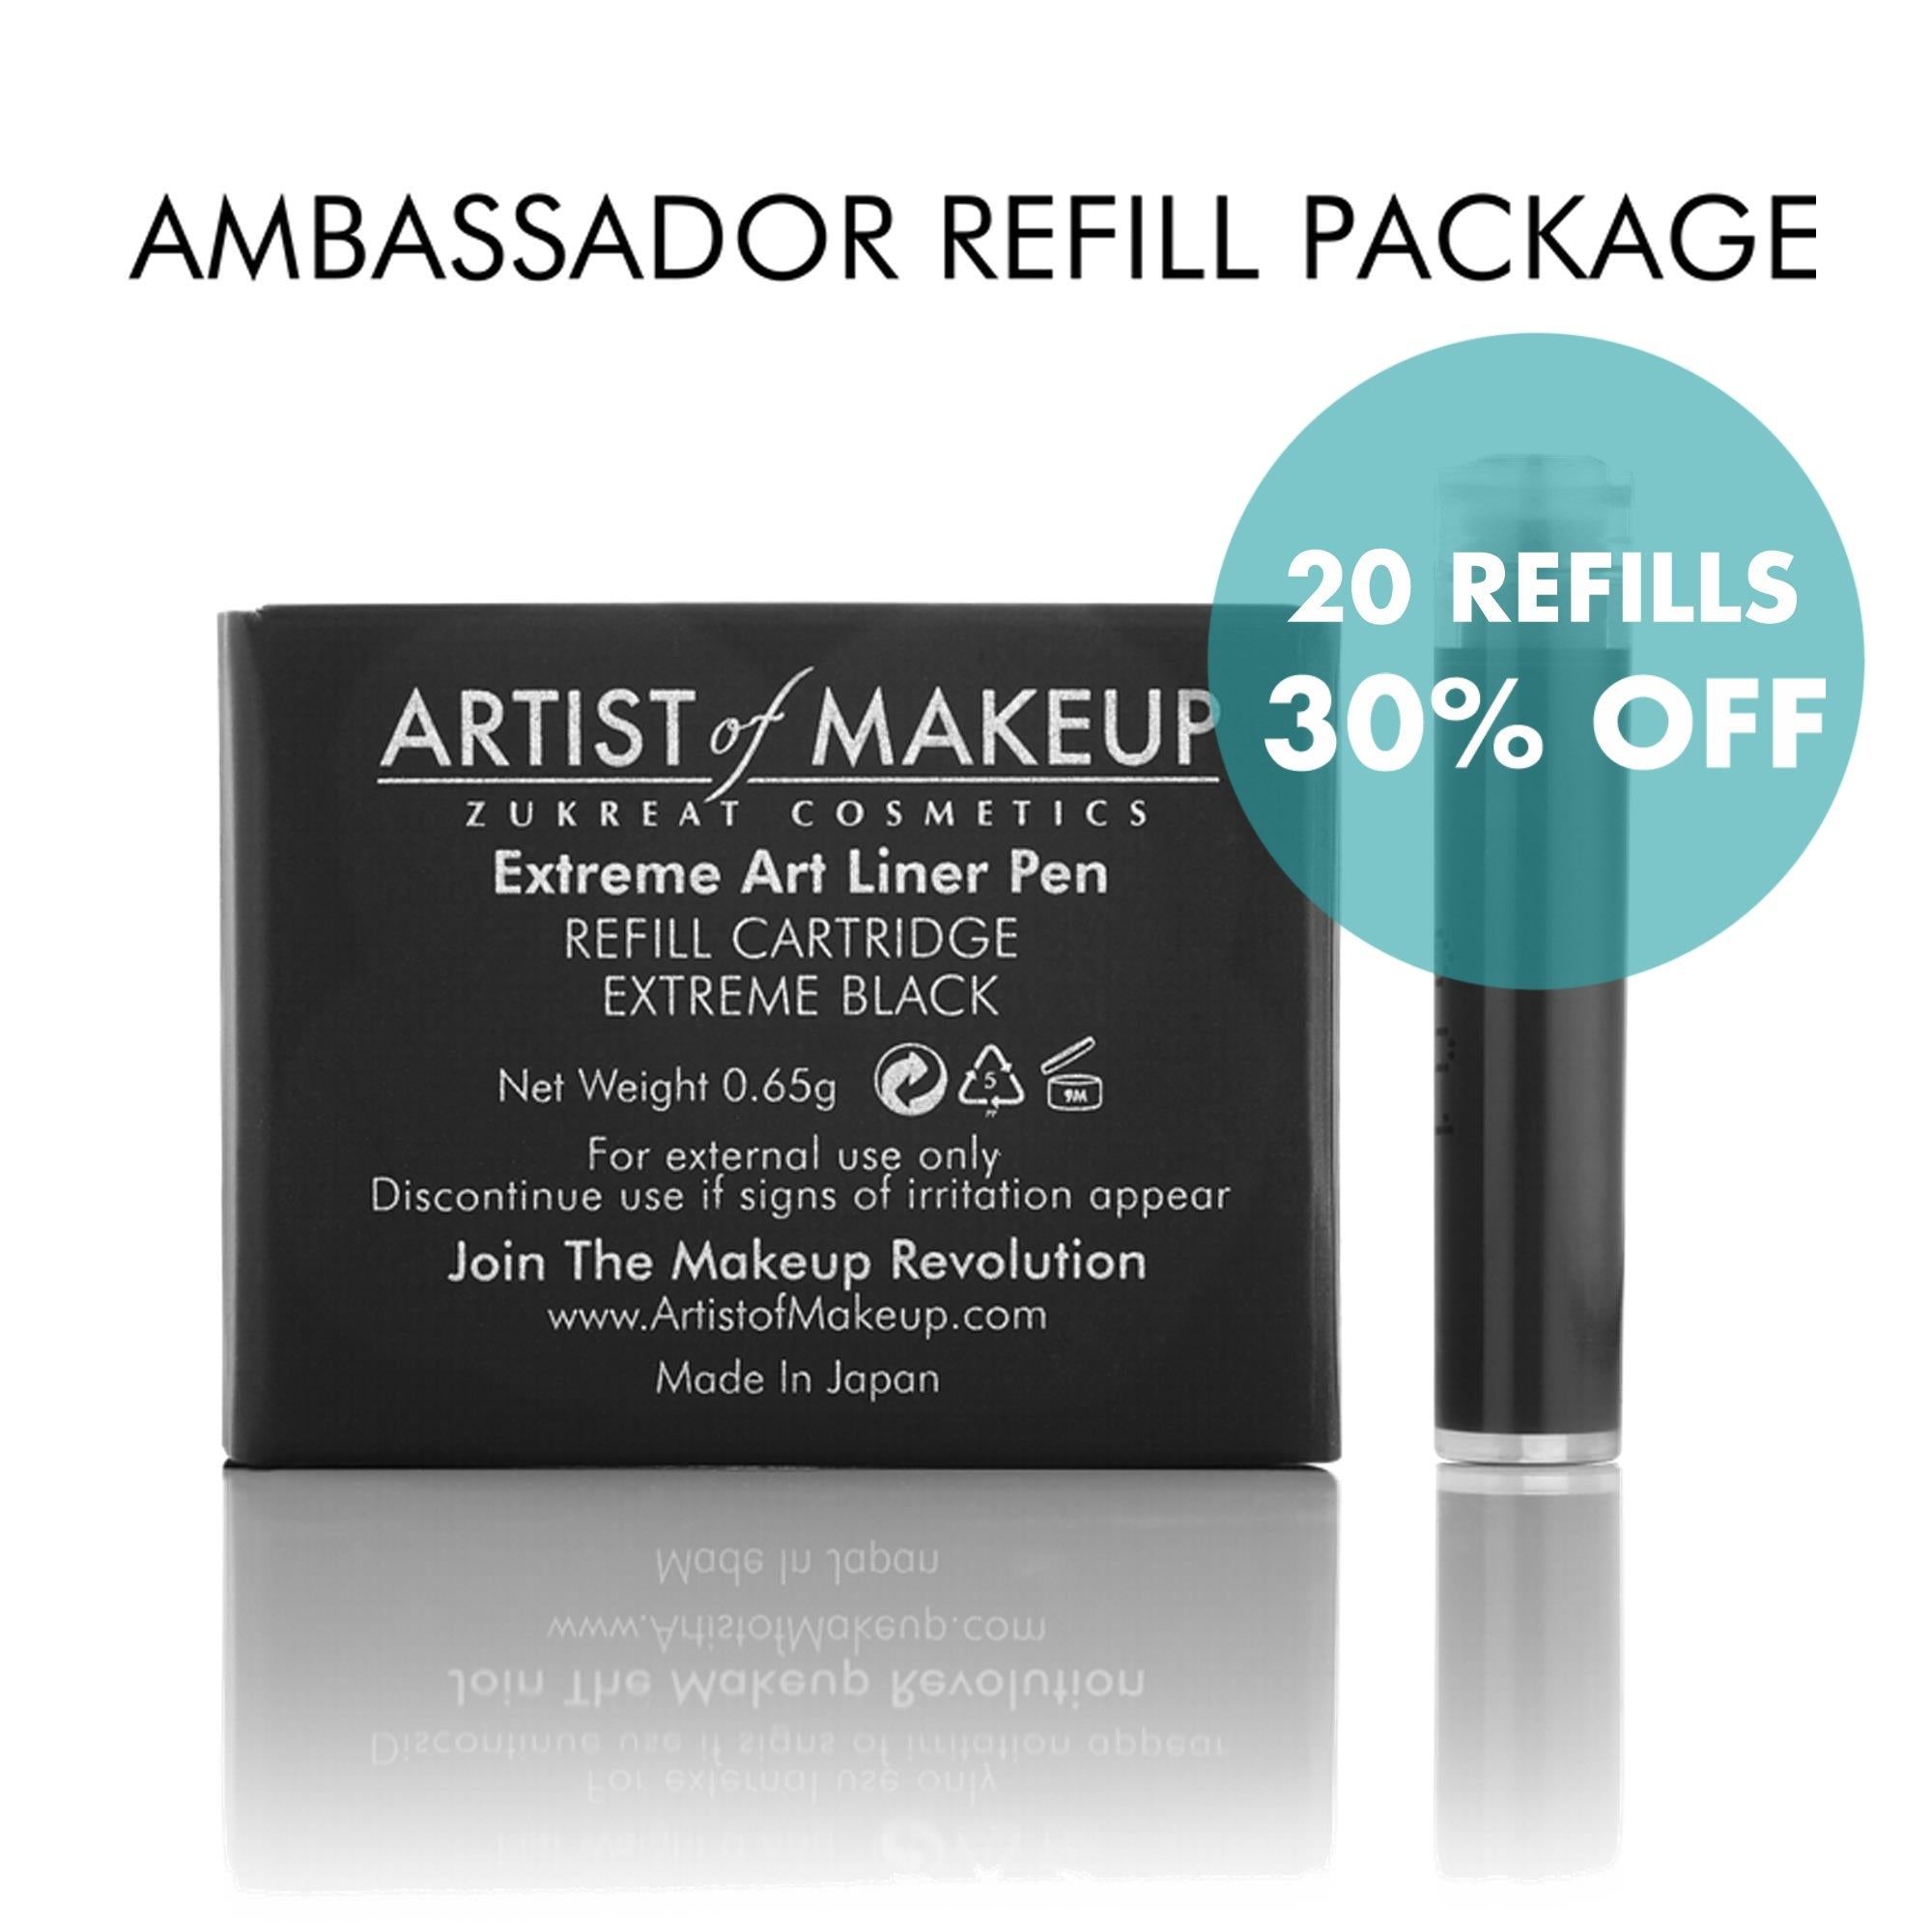 Ambassador 20 Refill Package